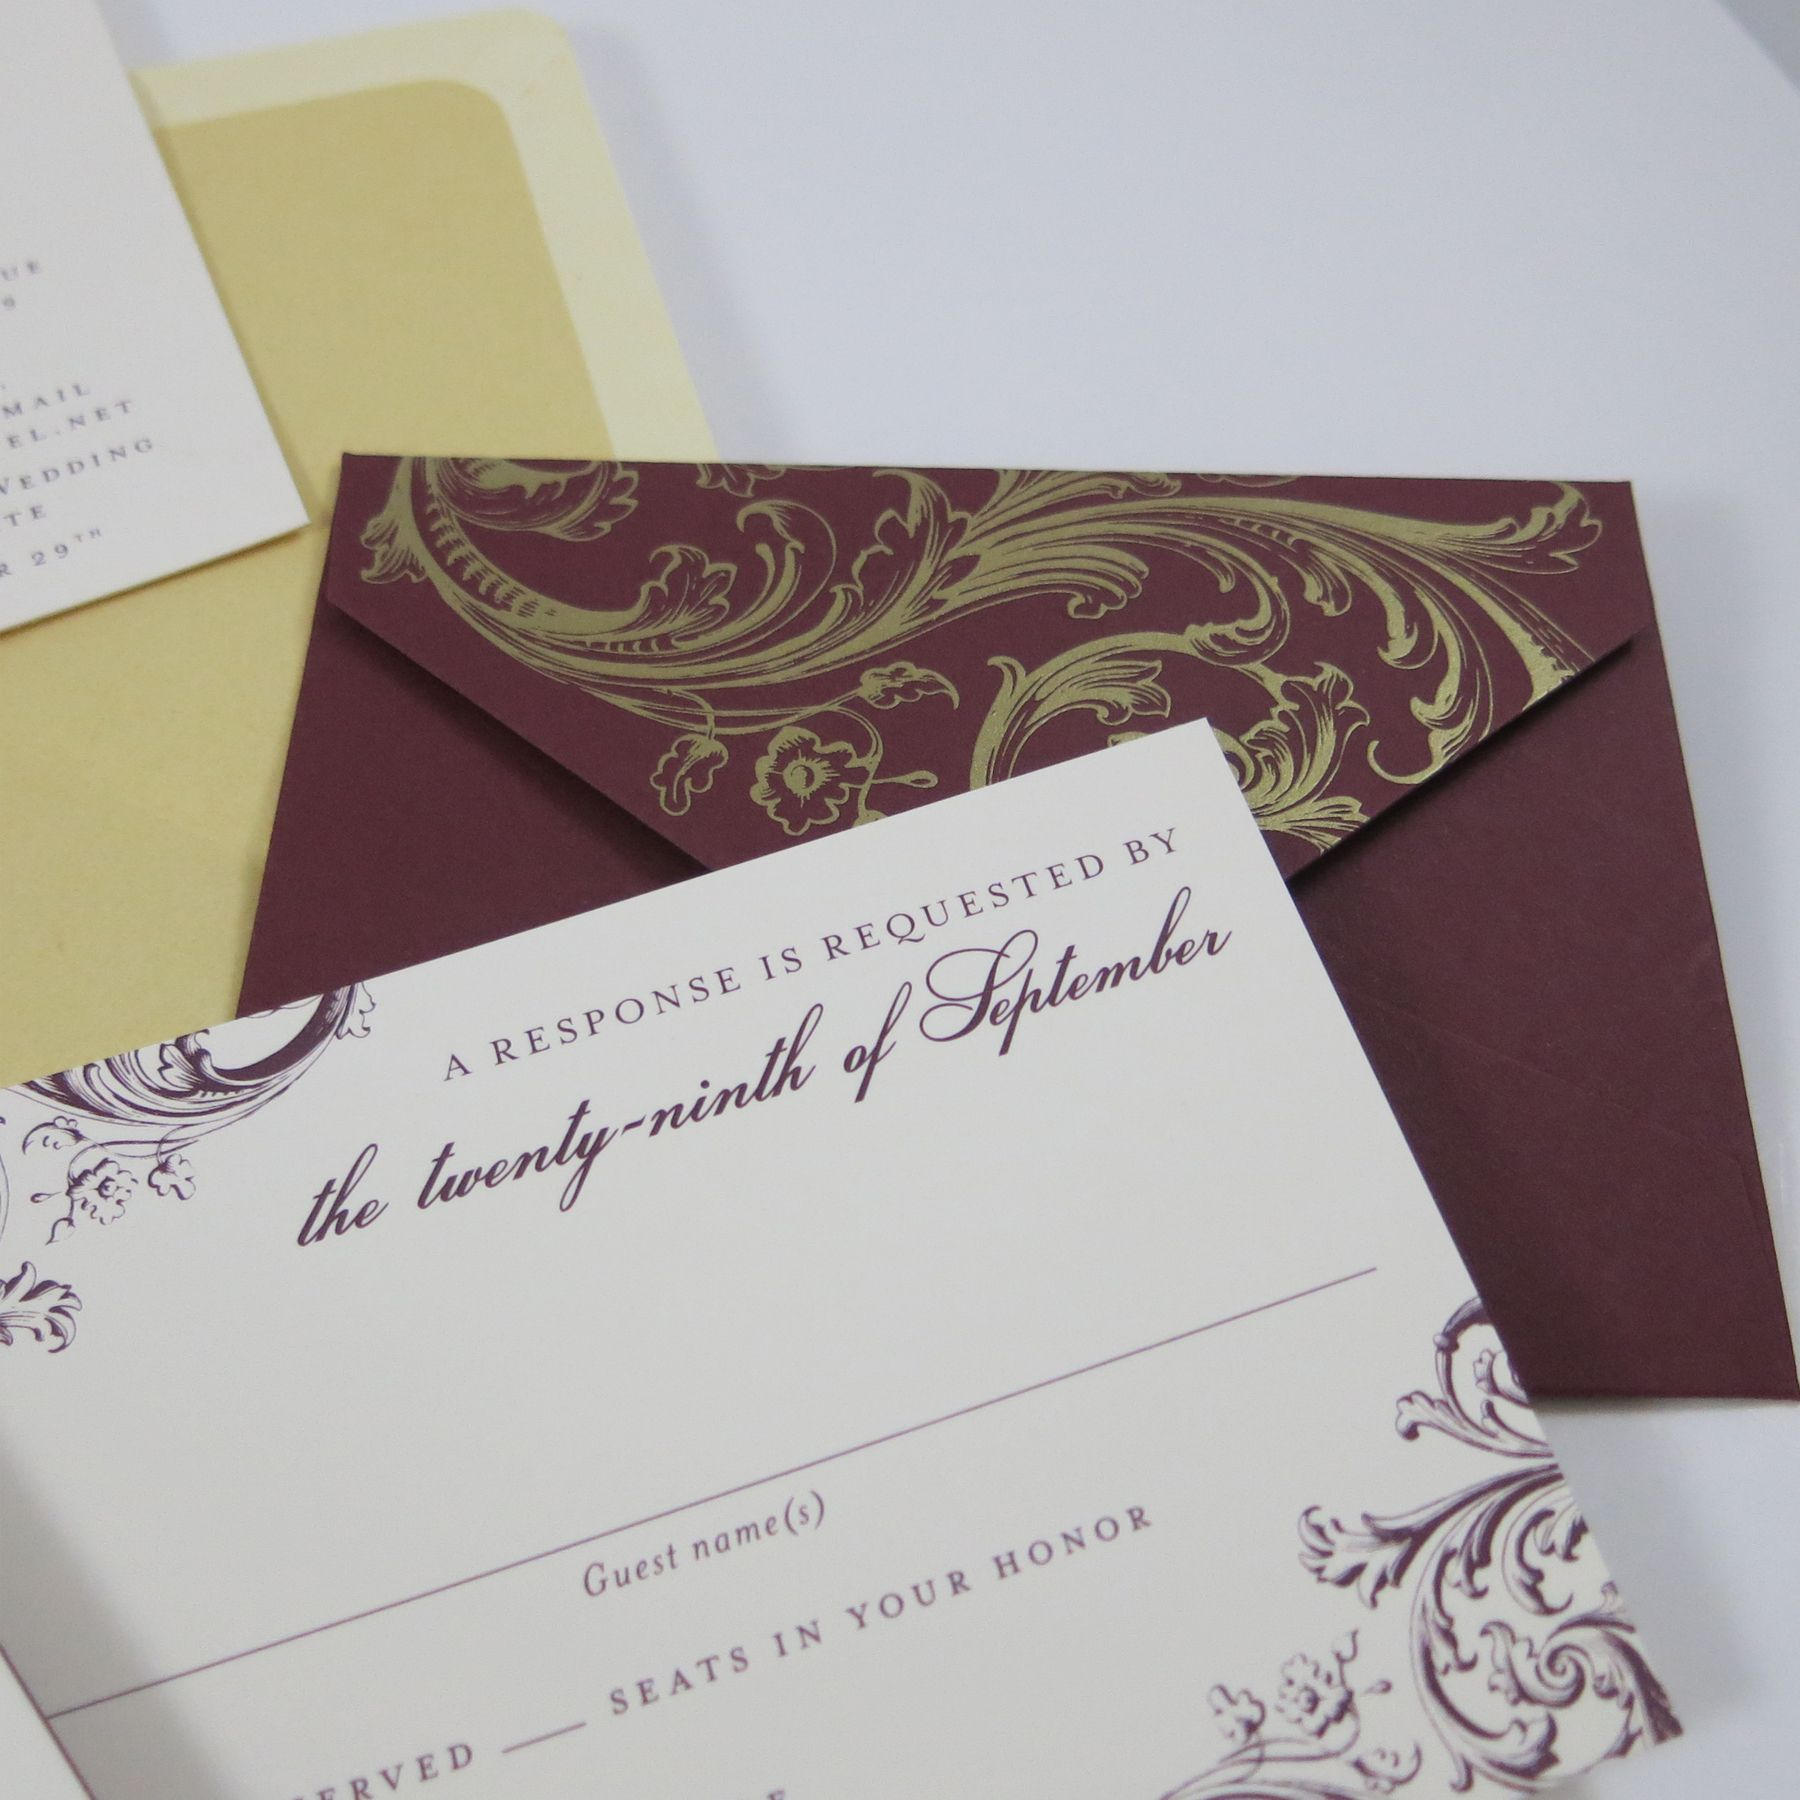 We Designed This Bilingual Wedding Invitation Using Both English And